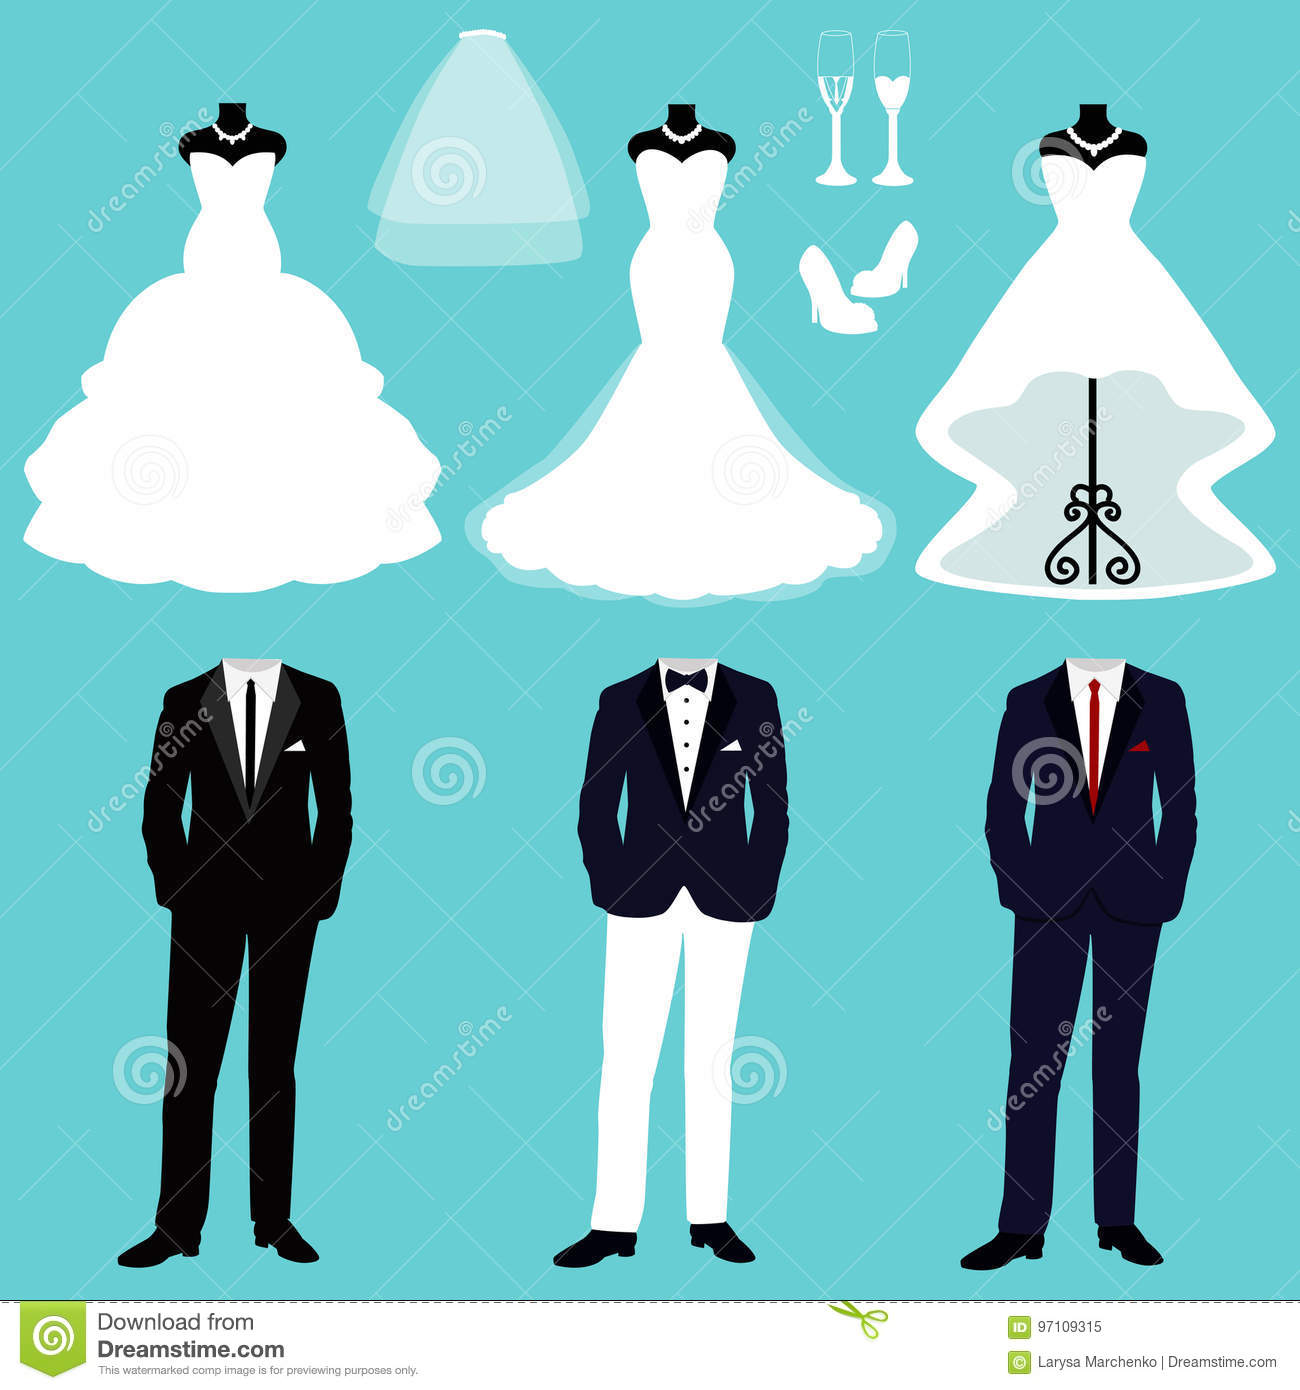 Wedding dress and tuxedo. stock vector. Illustration of clothes ...